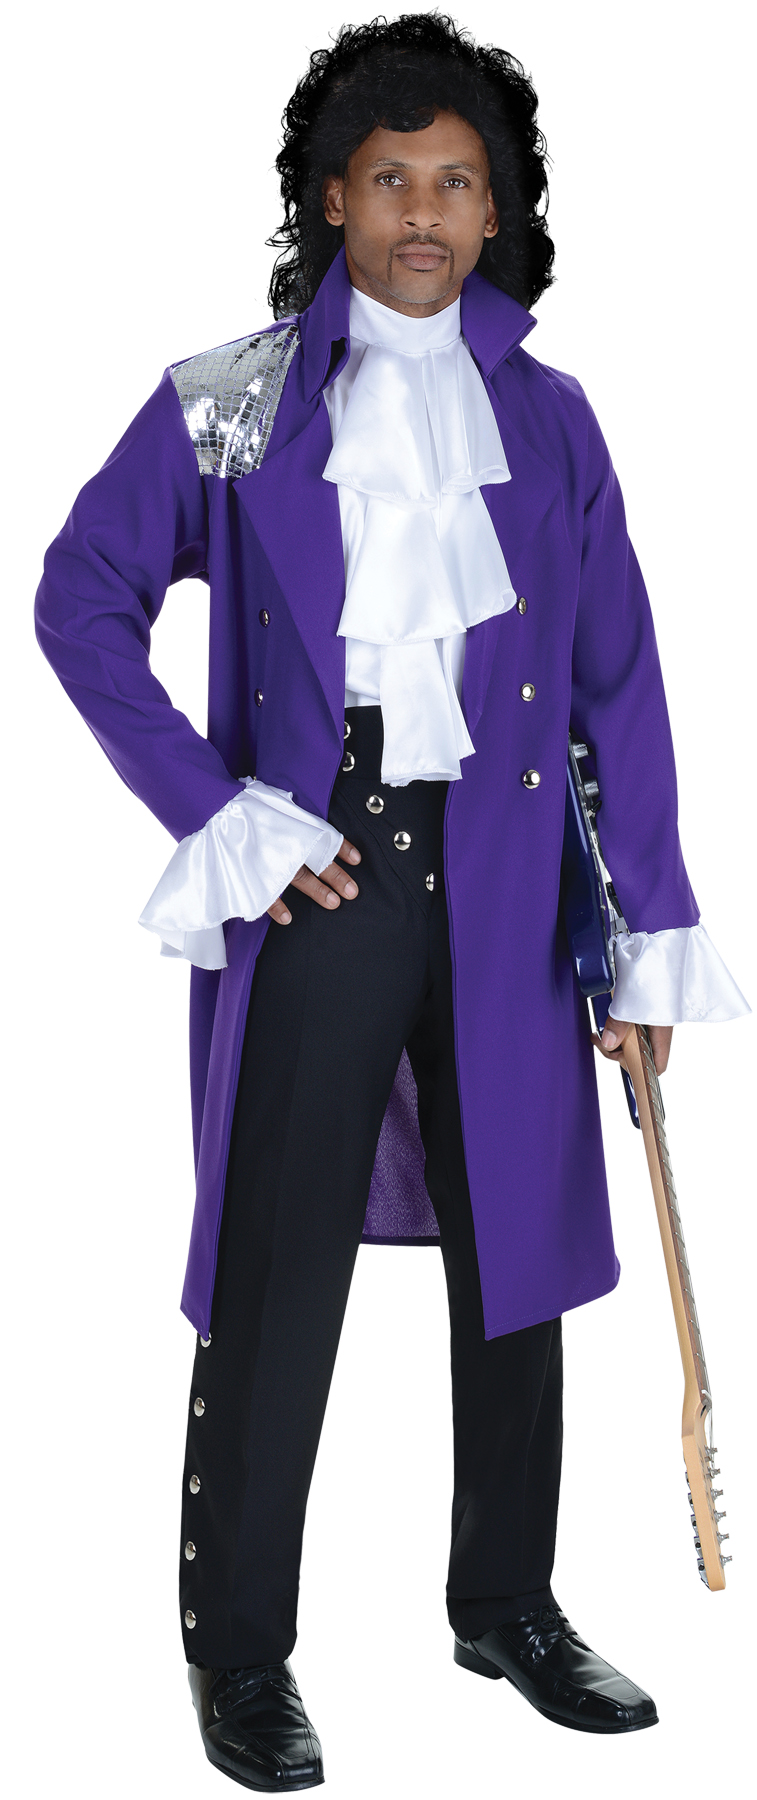 Prince Purple Rain Costume Jacket Jabot Adult Men's One Size | eBay